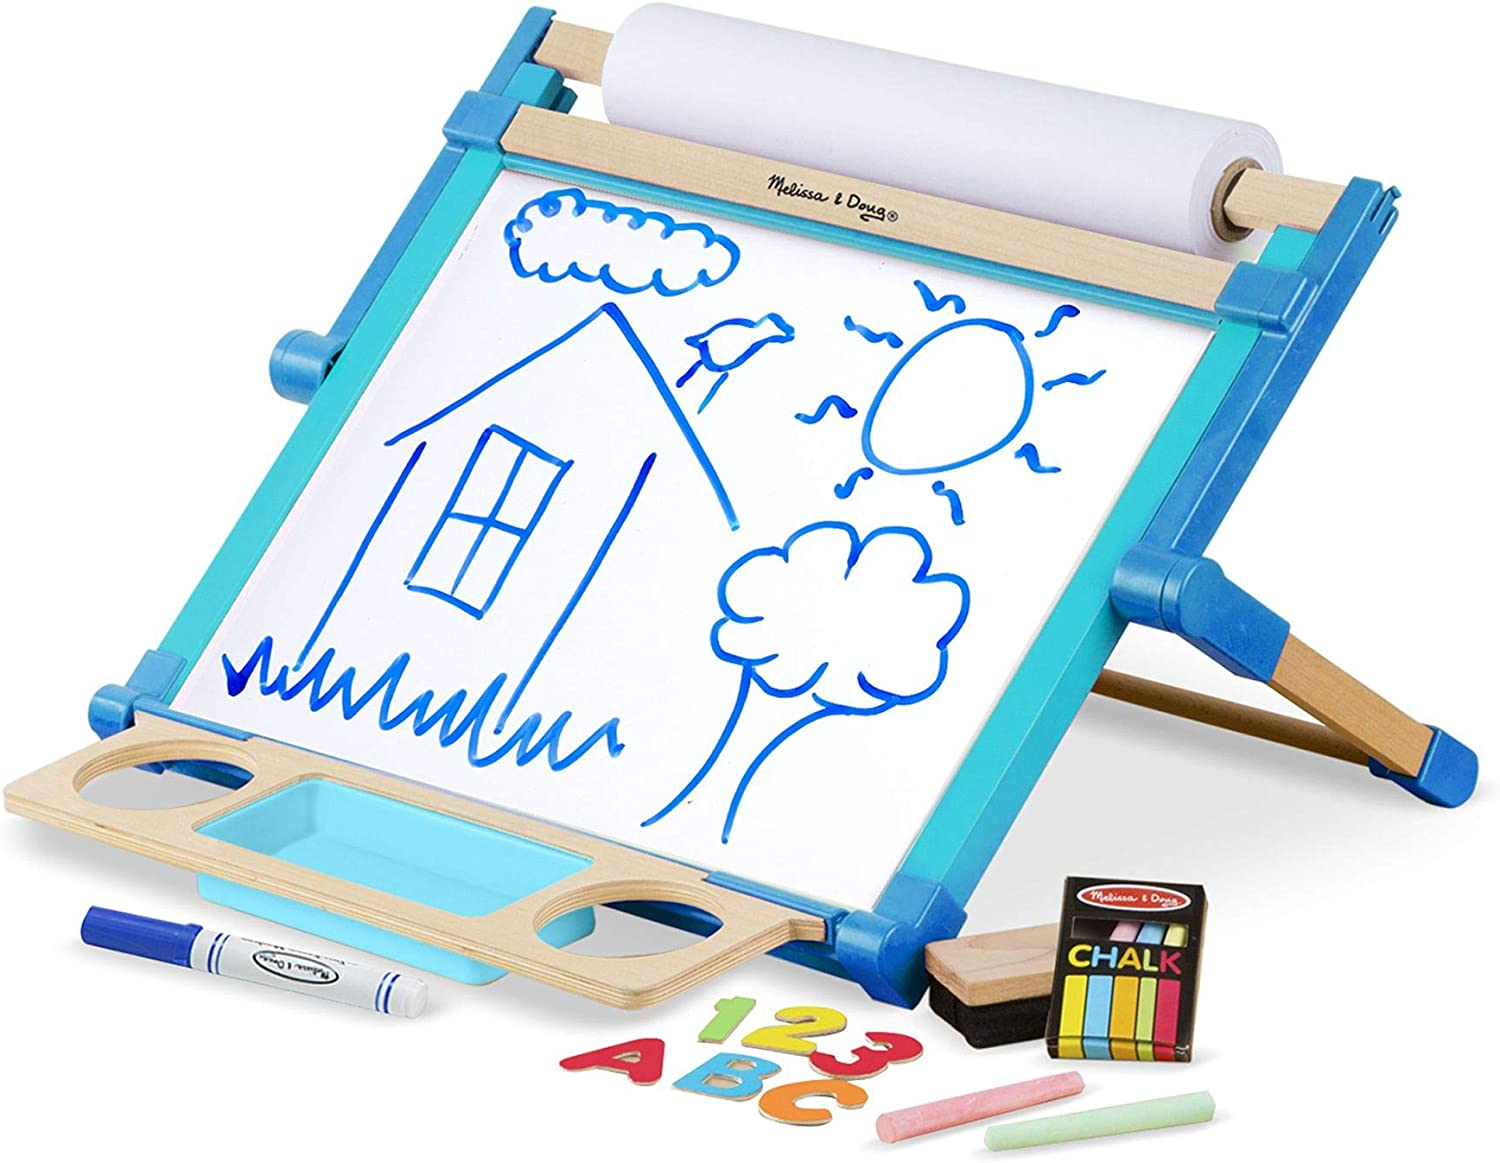 Max 64% OFF Melissa Direct stock discount Doug 12790 Double-Sided Magnetic Art - Tabletop Easel